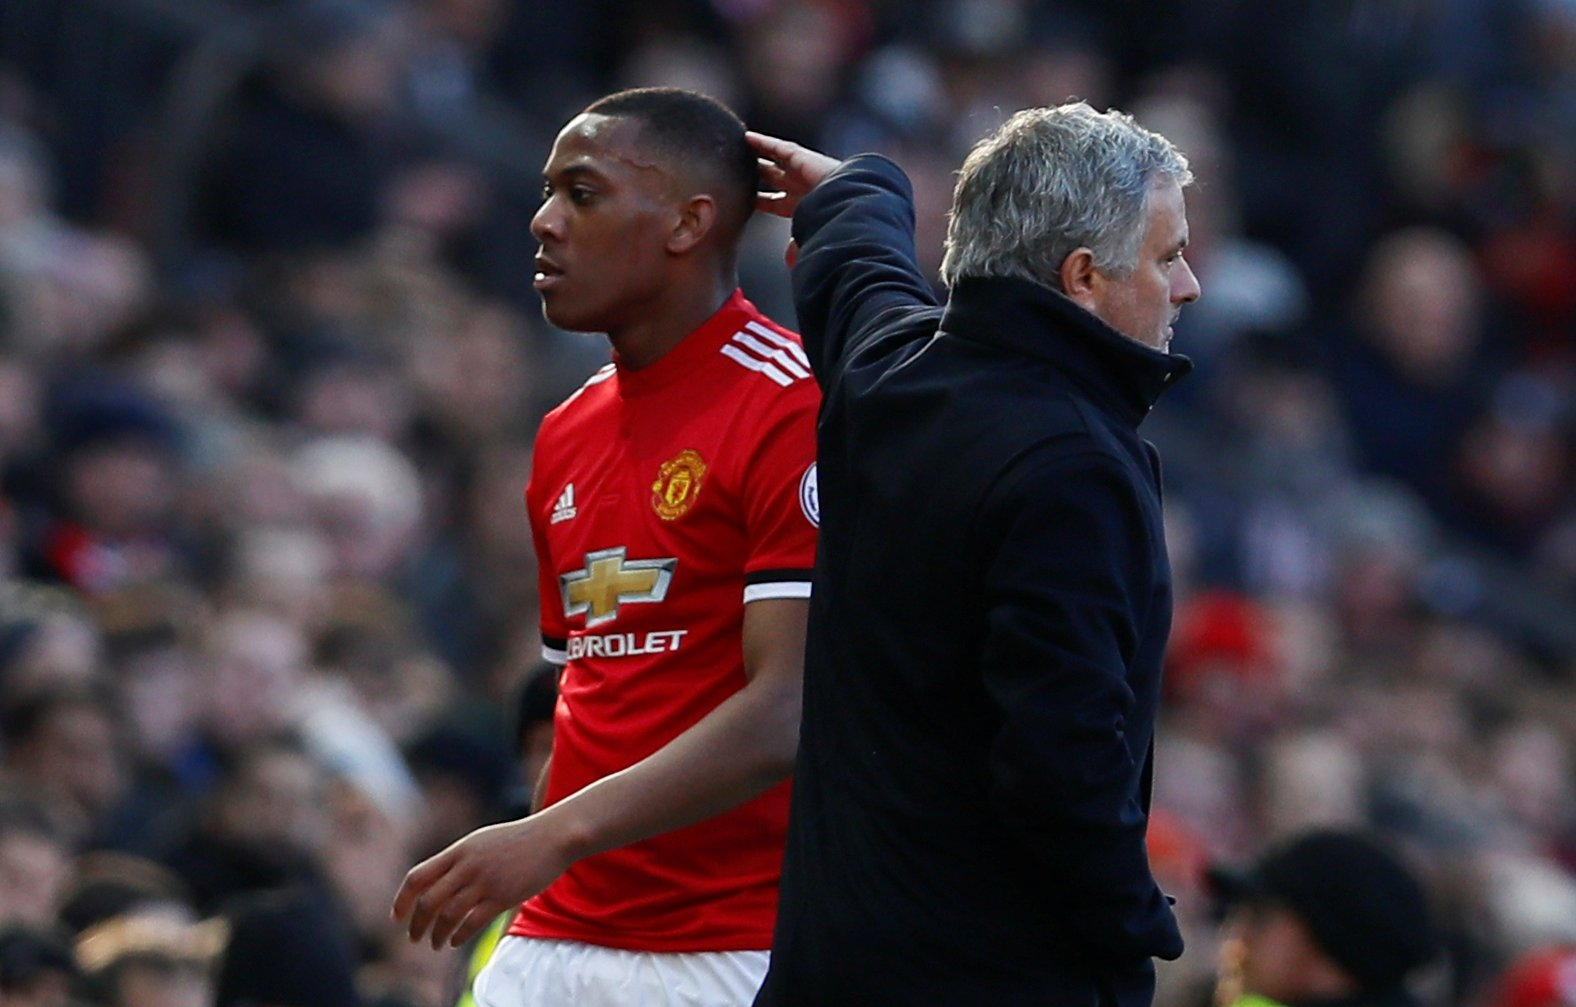 Anthony Martial is more important for Spurs than Jack Grealish